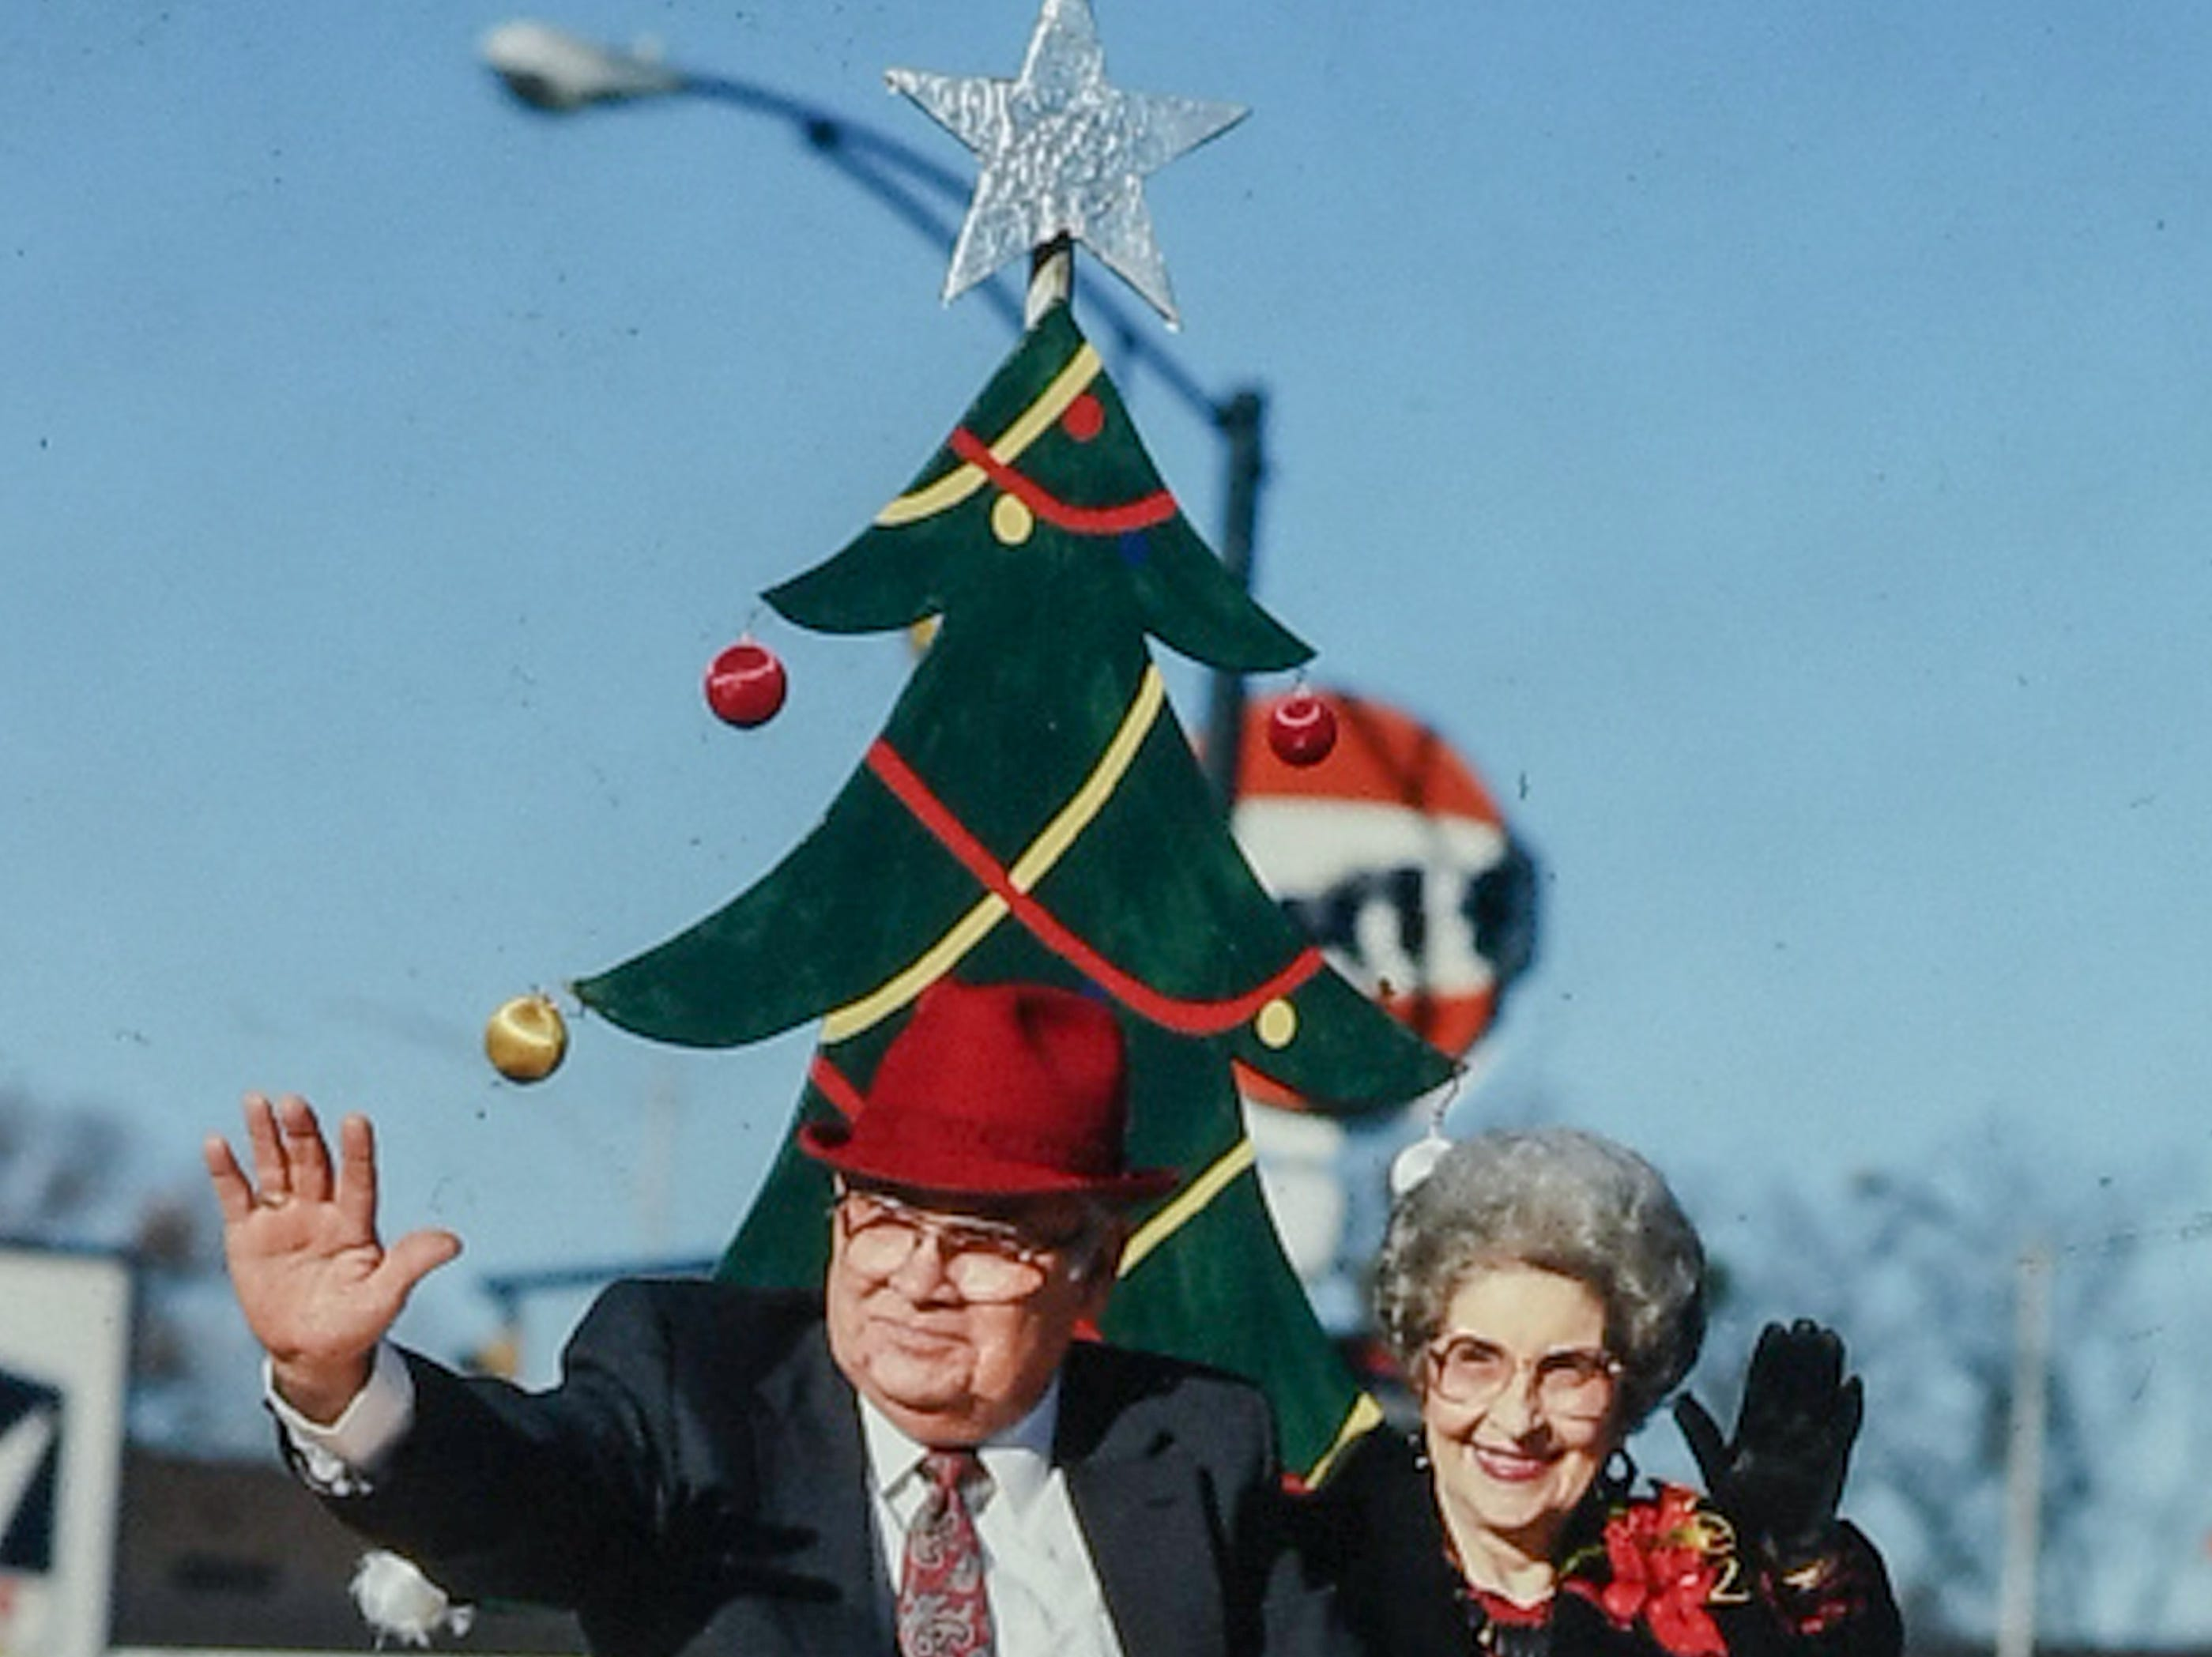 City Mayor Darwin Wright waves during the Anderson Christmas parade in December 1987 in downtown Anderson. (Patrick Wright photos)